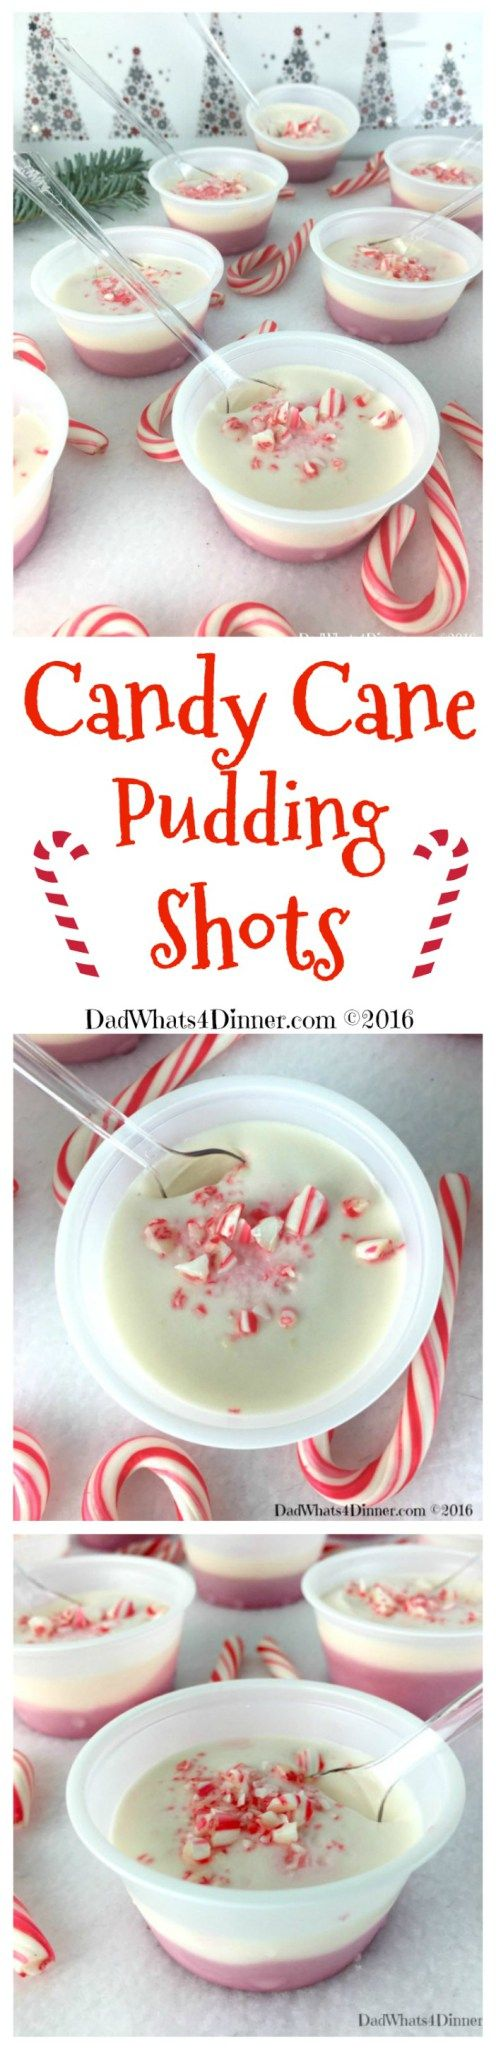 Your Christmas party will be Ho Ho Ho not Ho Ho Hum with these adult Candy Cane Pudding Shots. Your favorite Christmas treat with a nice little peppermint kick. Smooth and creamy! #jello-shots #shots #pudding-shots #Christmas #Jello #pudding #candycanes #peppermint www.dadwhats4dinner.com ©2016